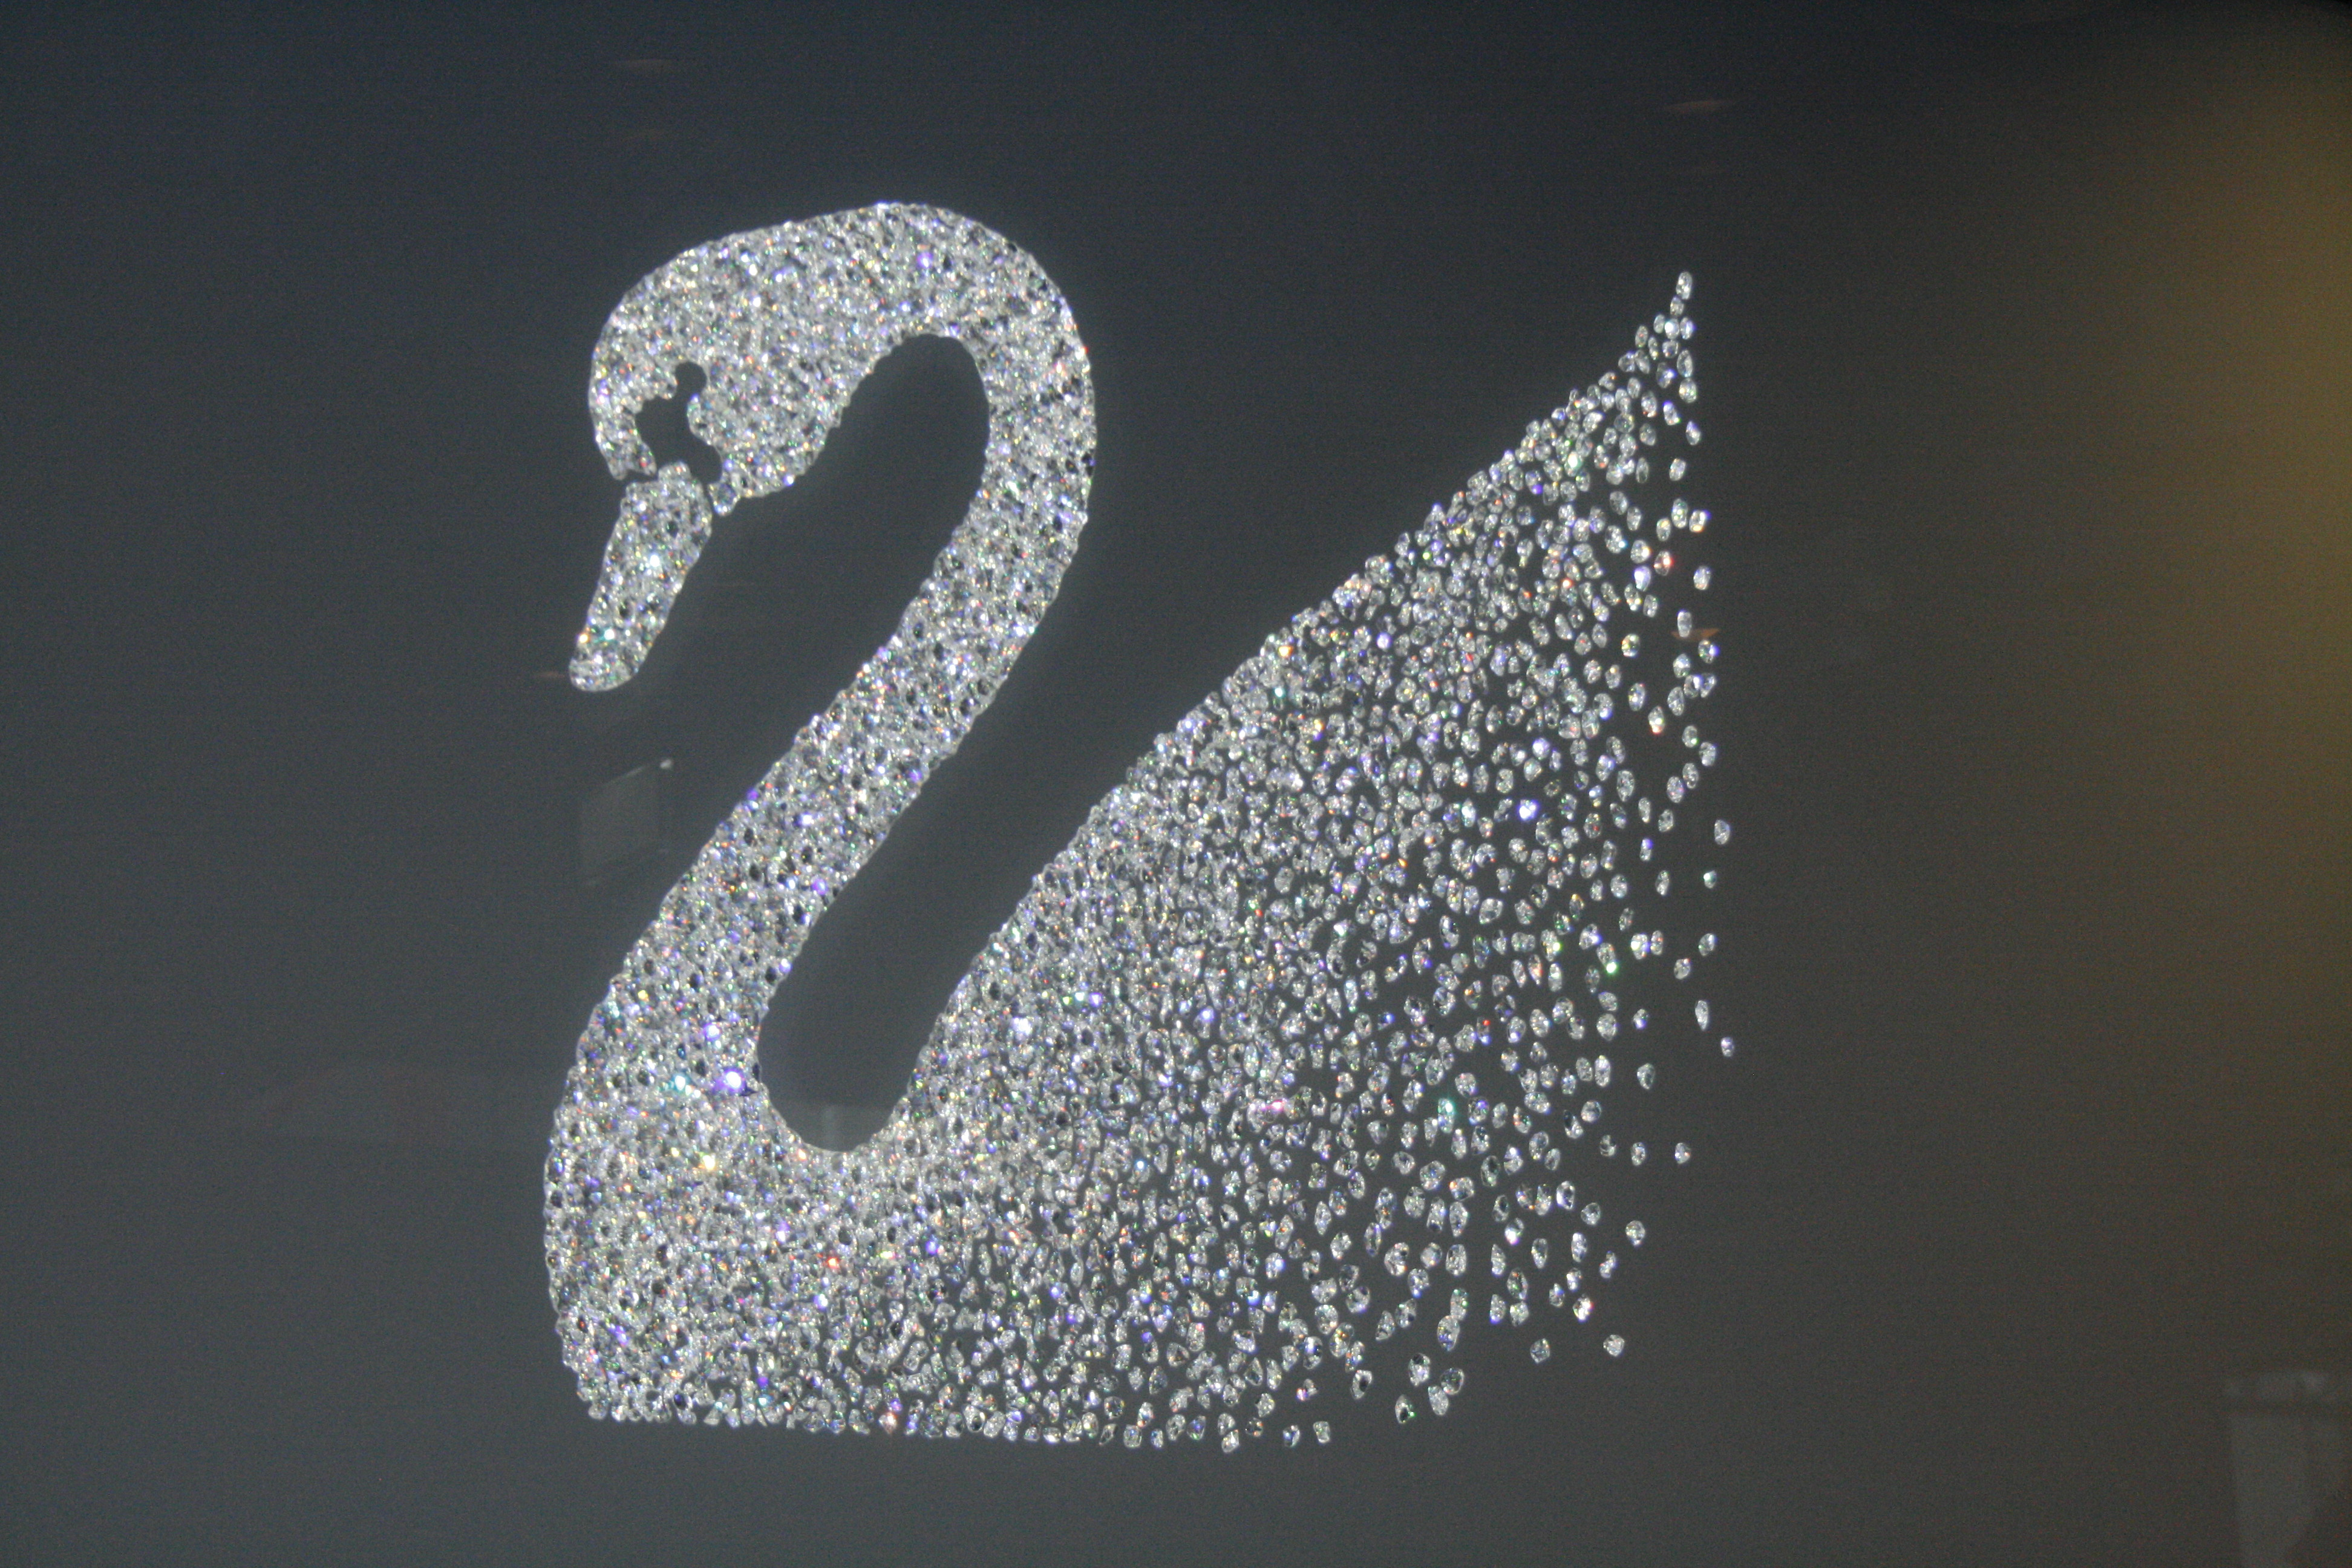 The Swarovski swan - still a symbol of exclusiveness?